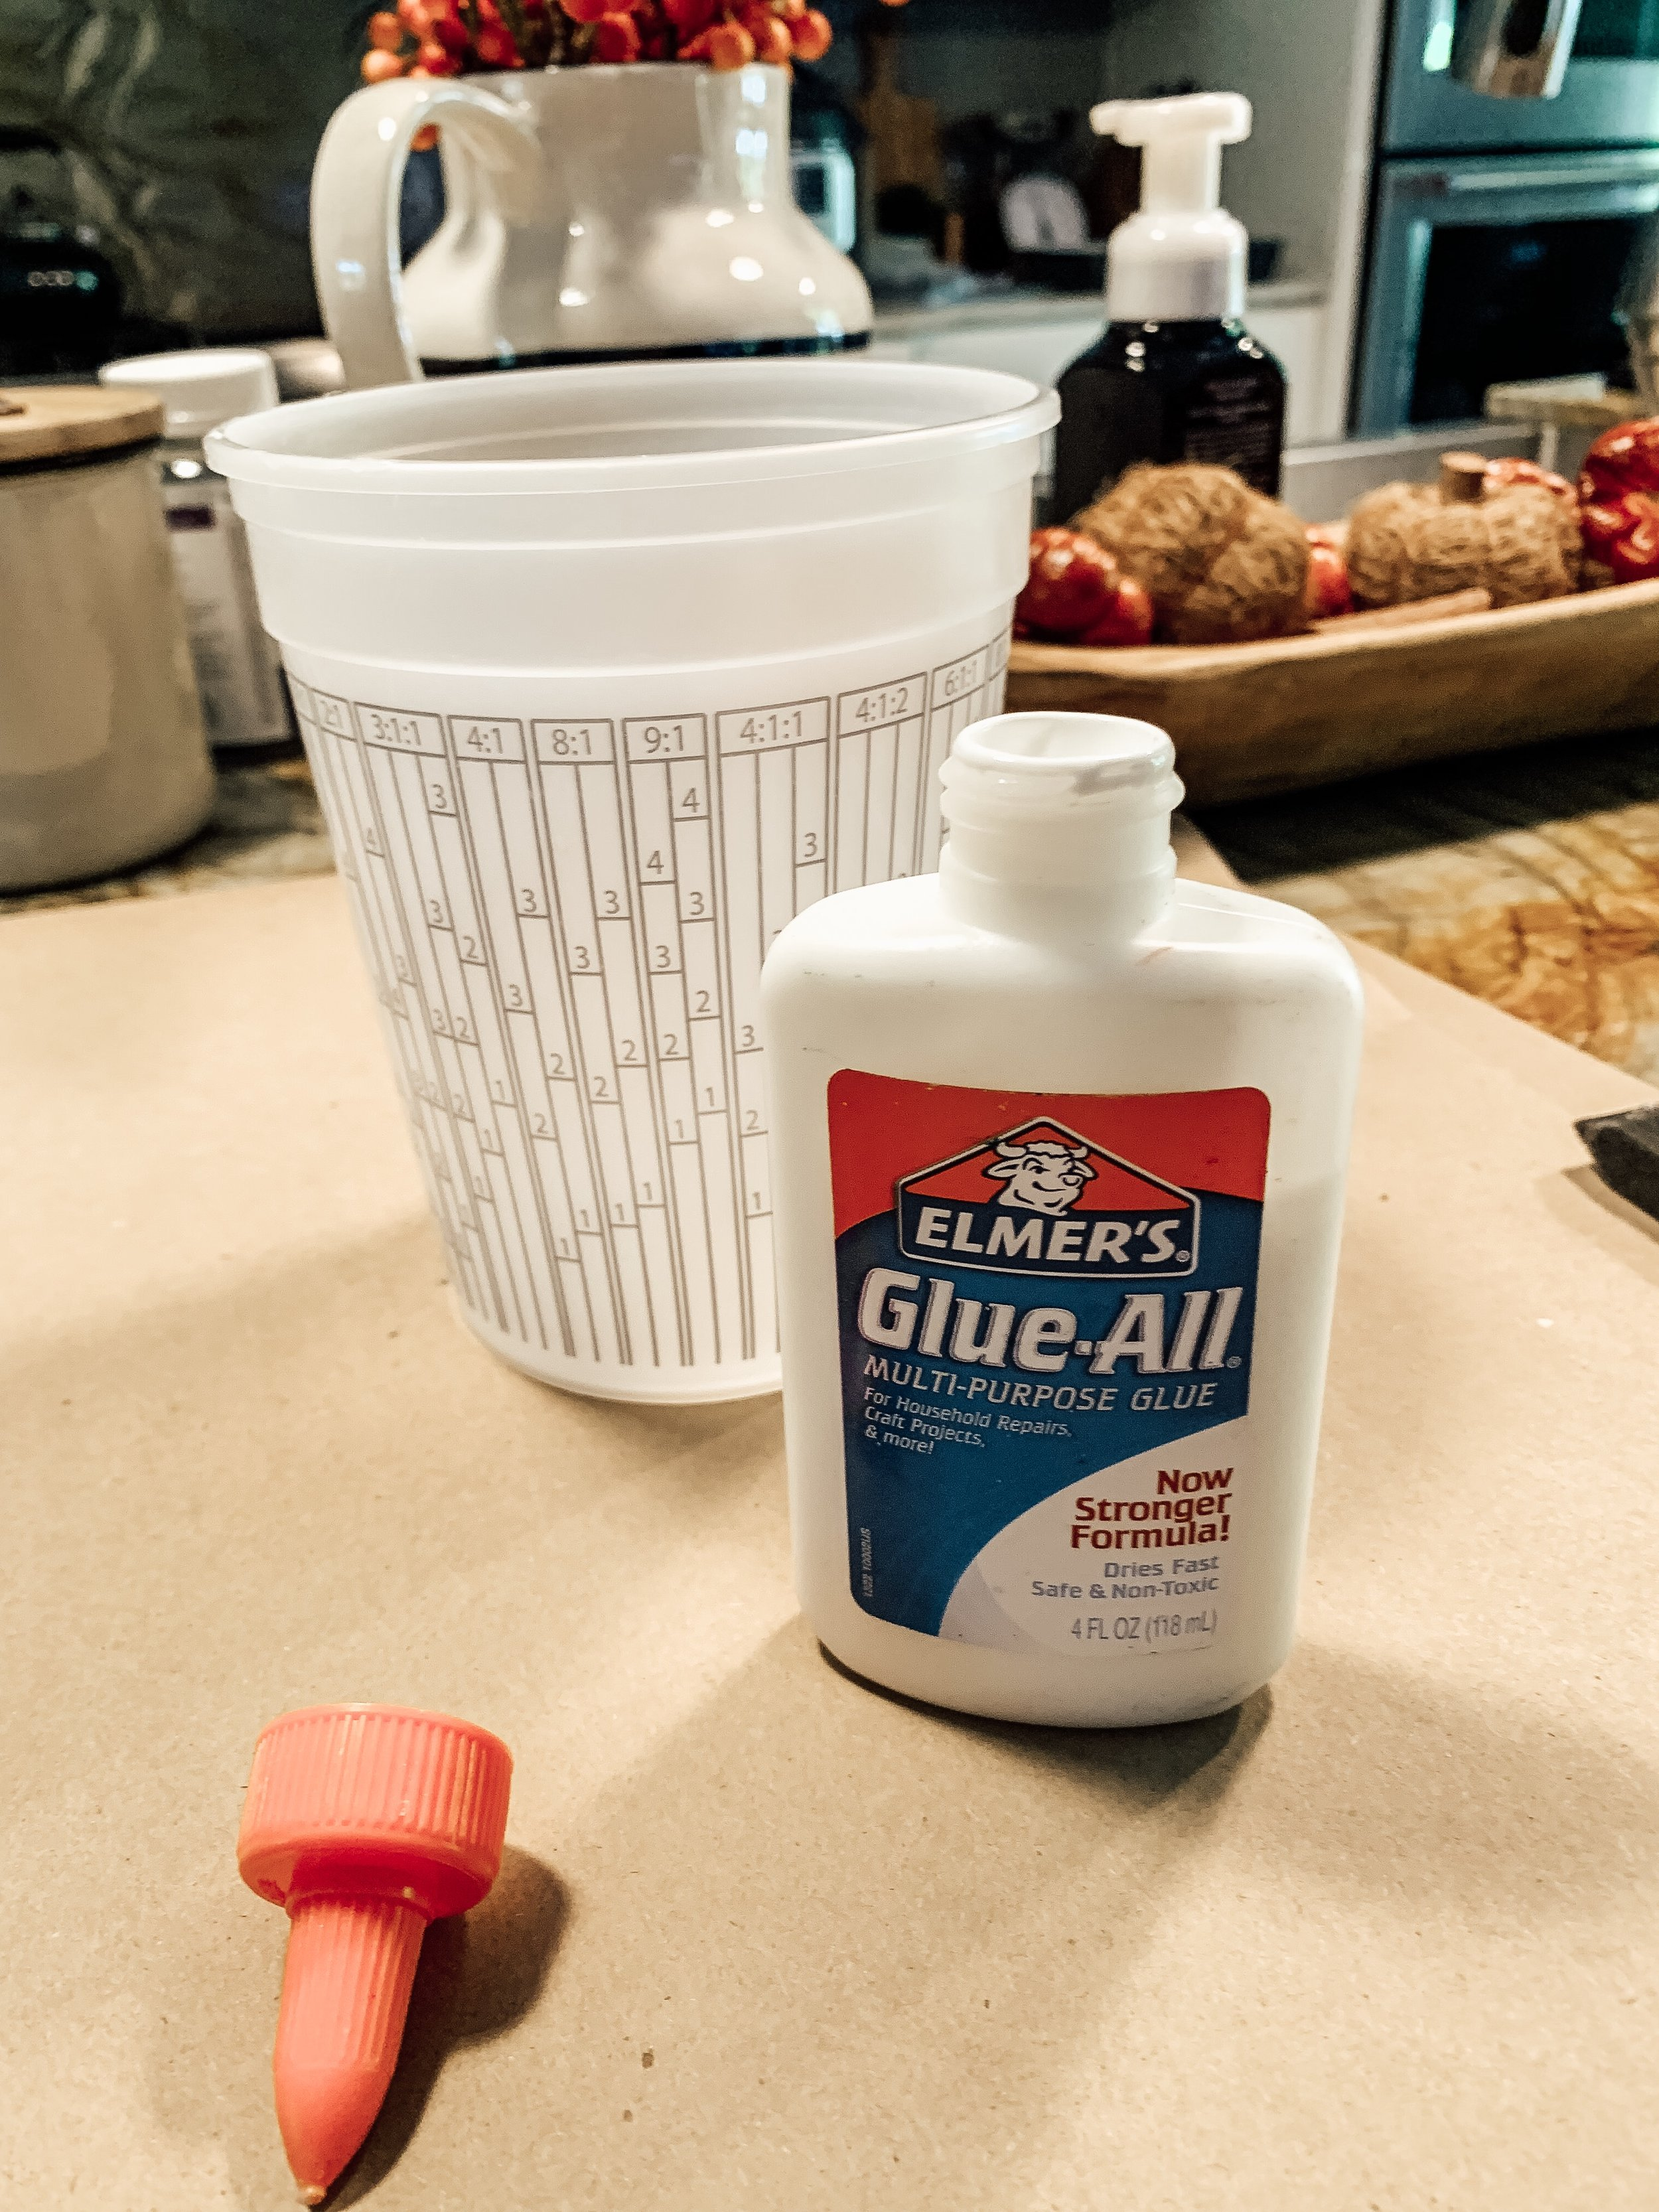 Mix glue and water to make a water glue mixture